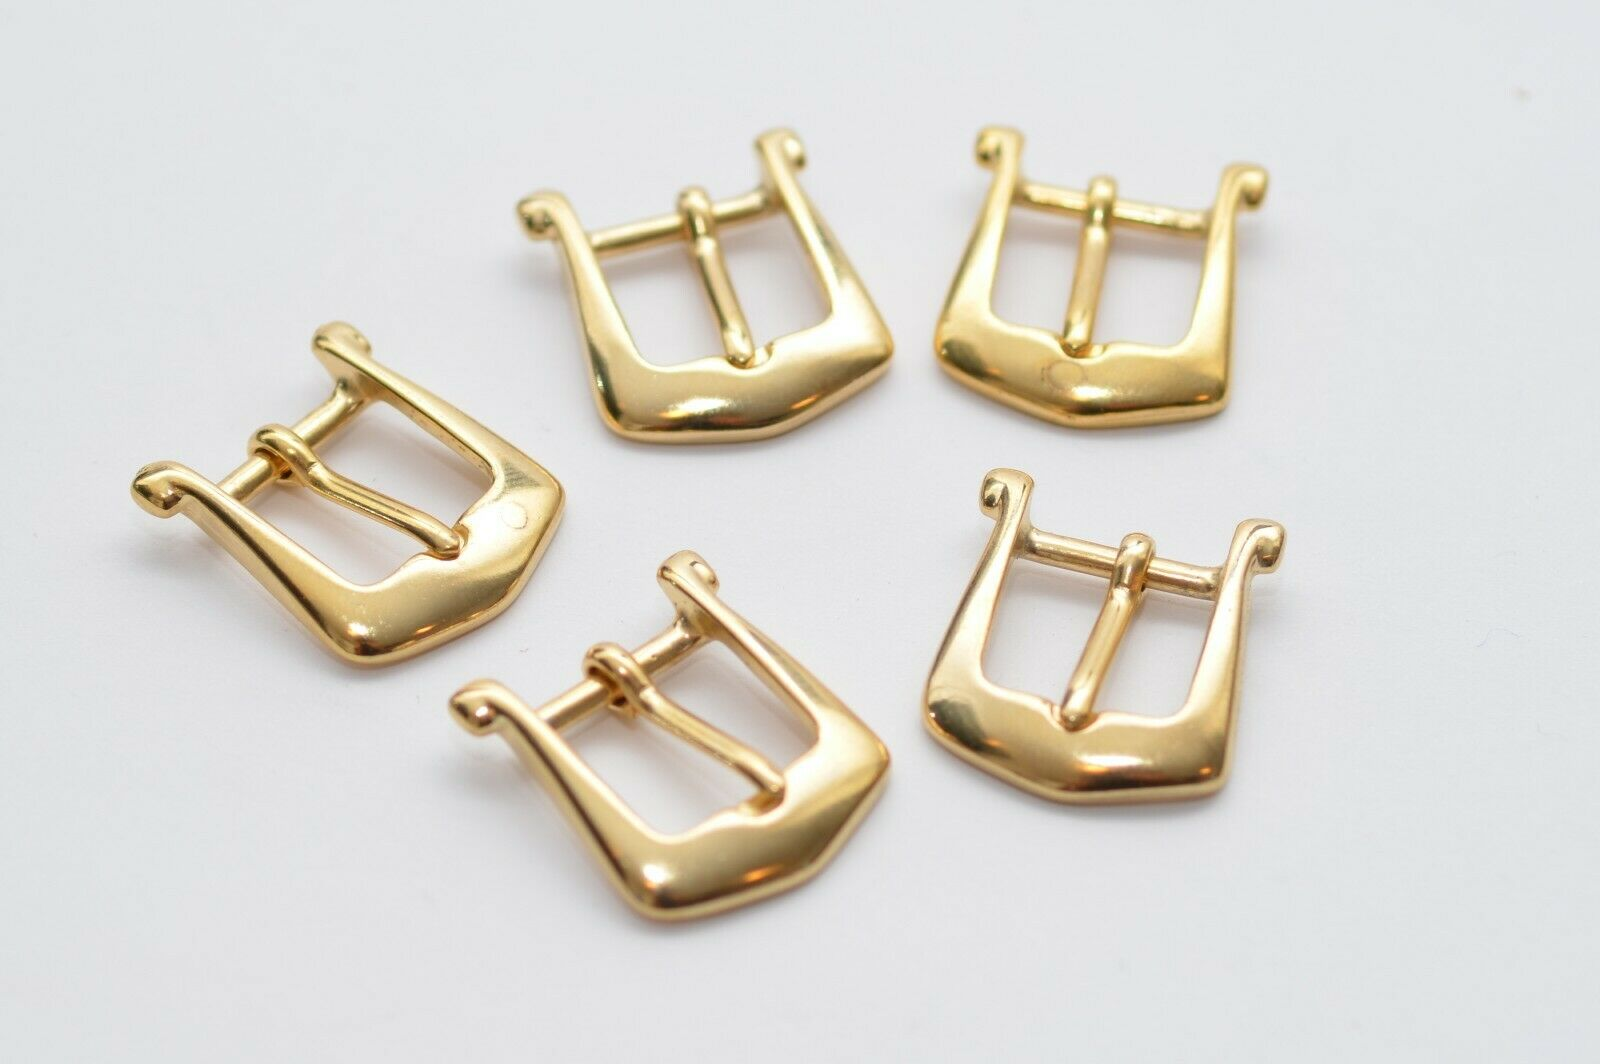 5x Small Belt Buckle Clasp Buckle For 15 MM Width, Gold, 80er Years